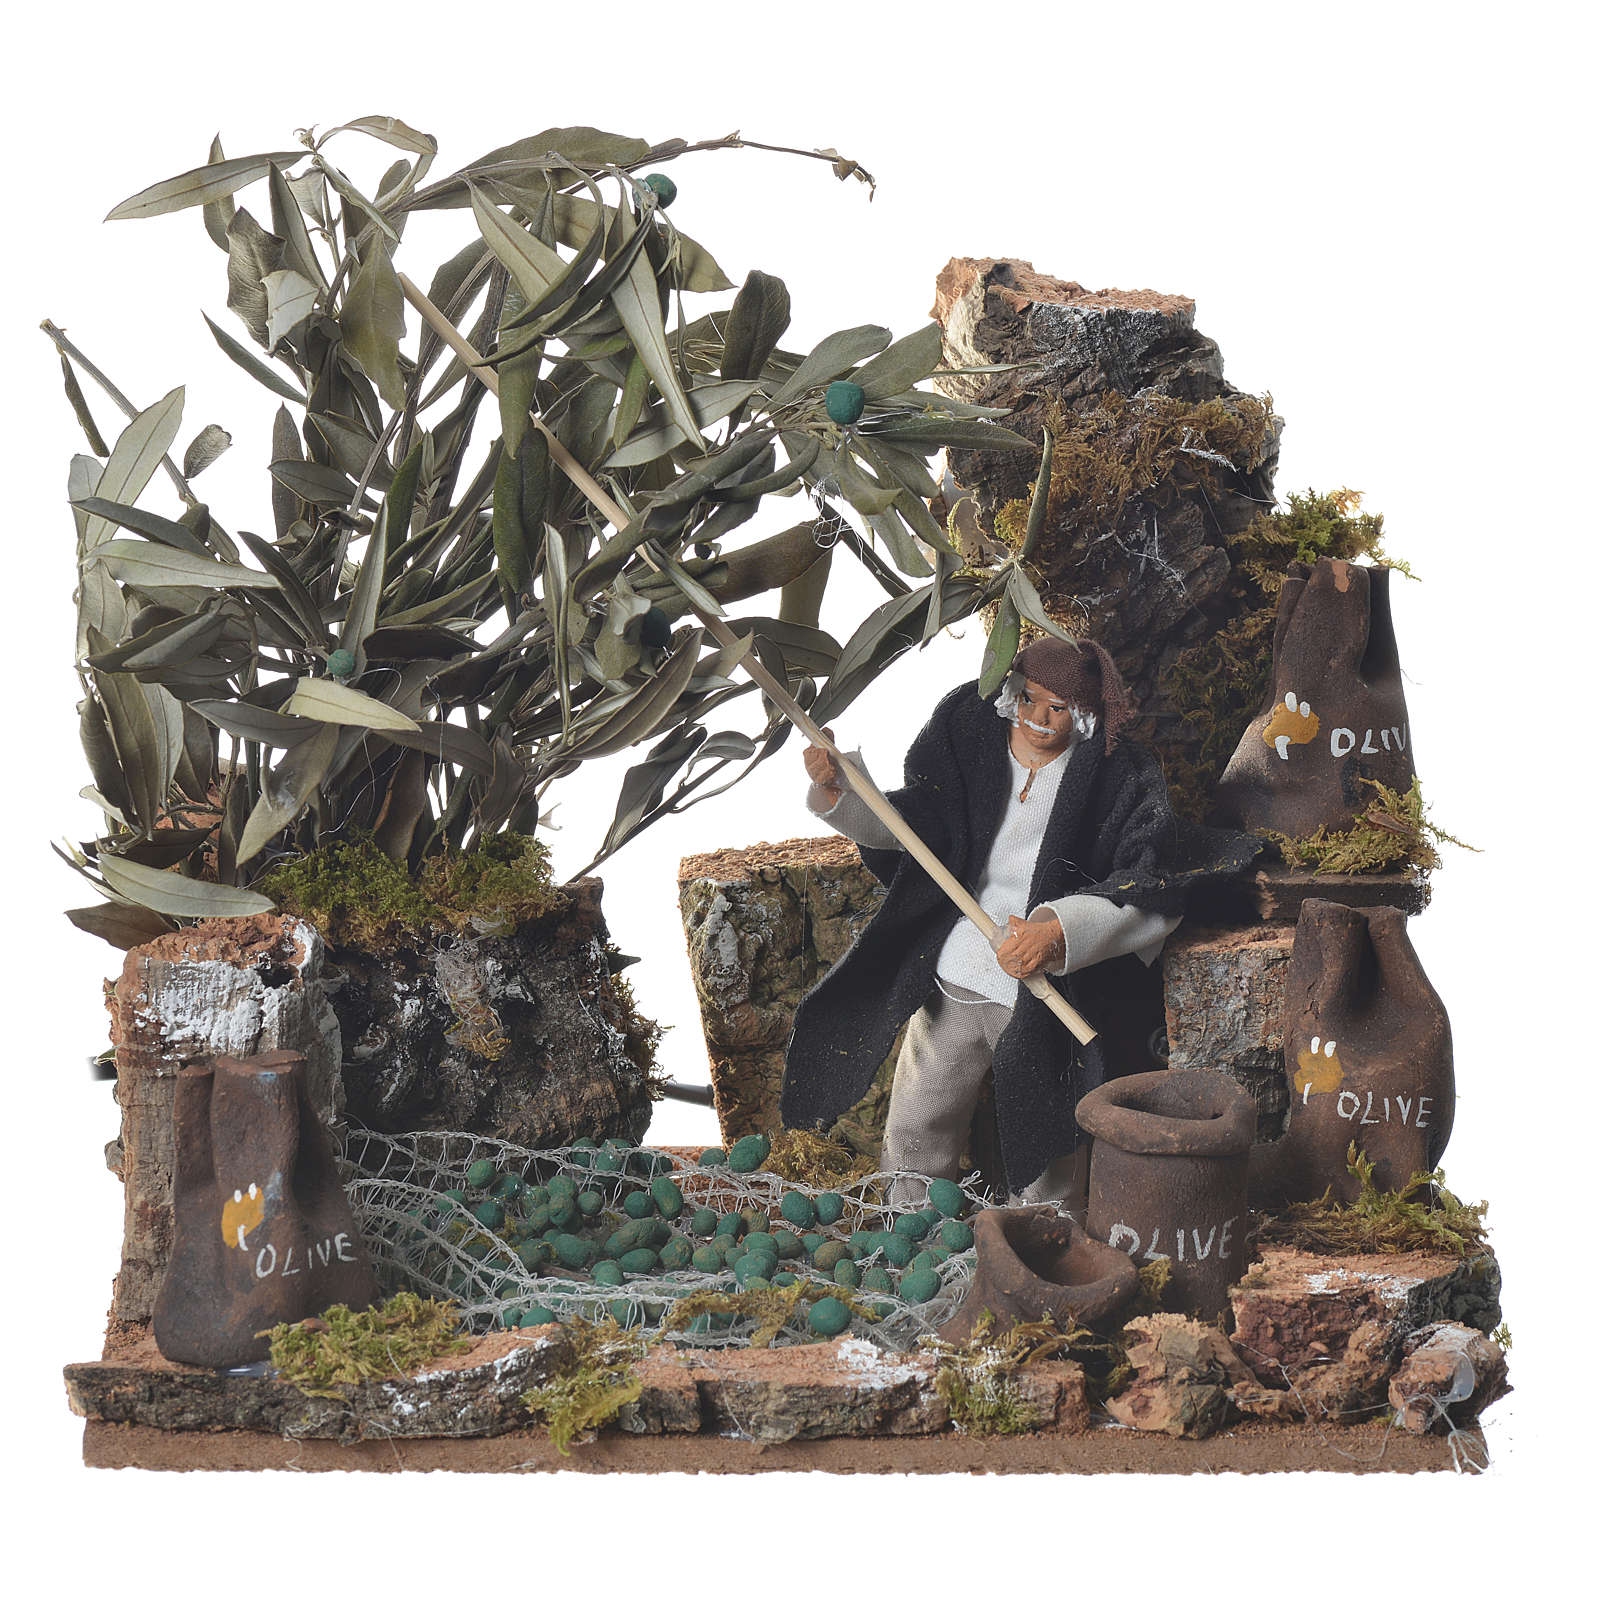 Man harvesting olives, 12cm animated nativity 3